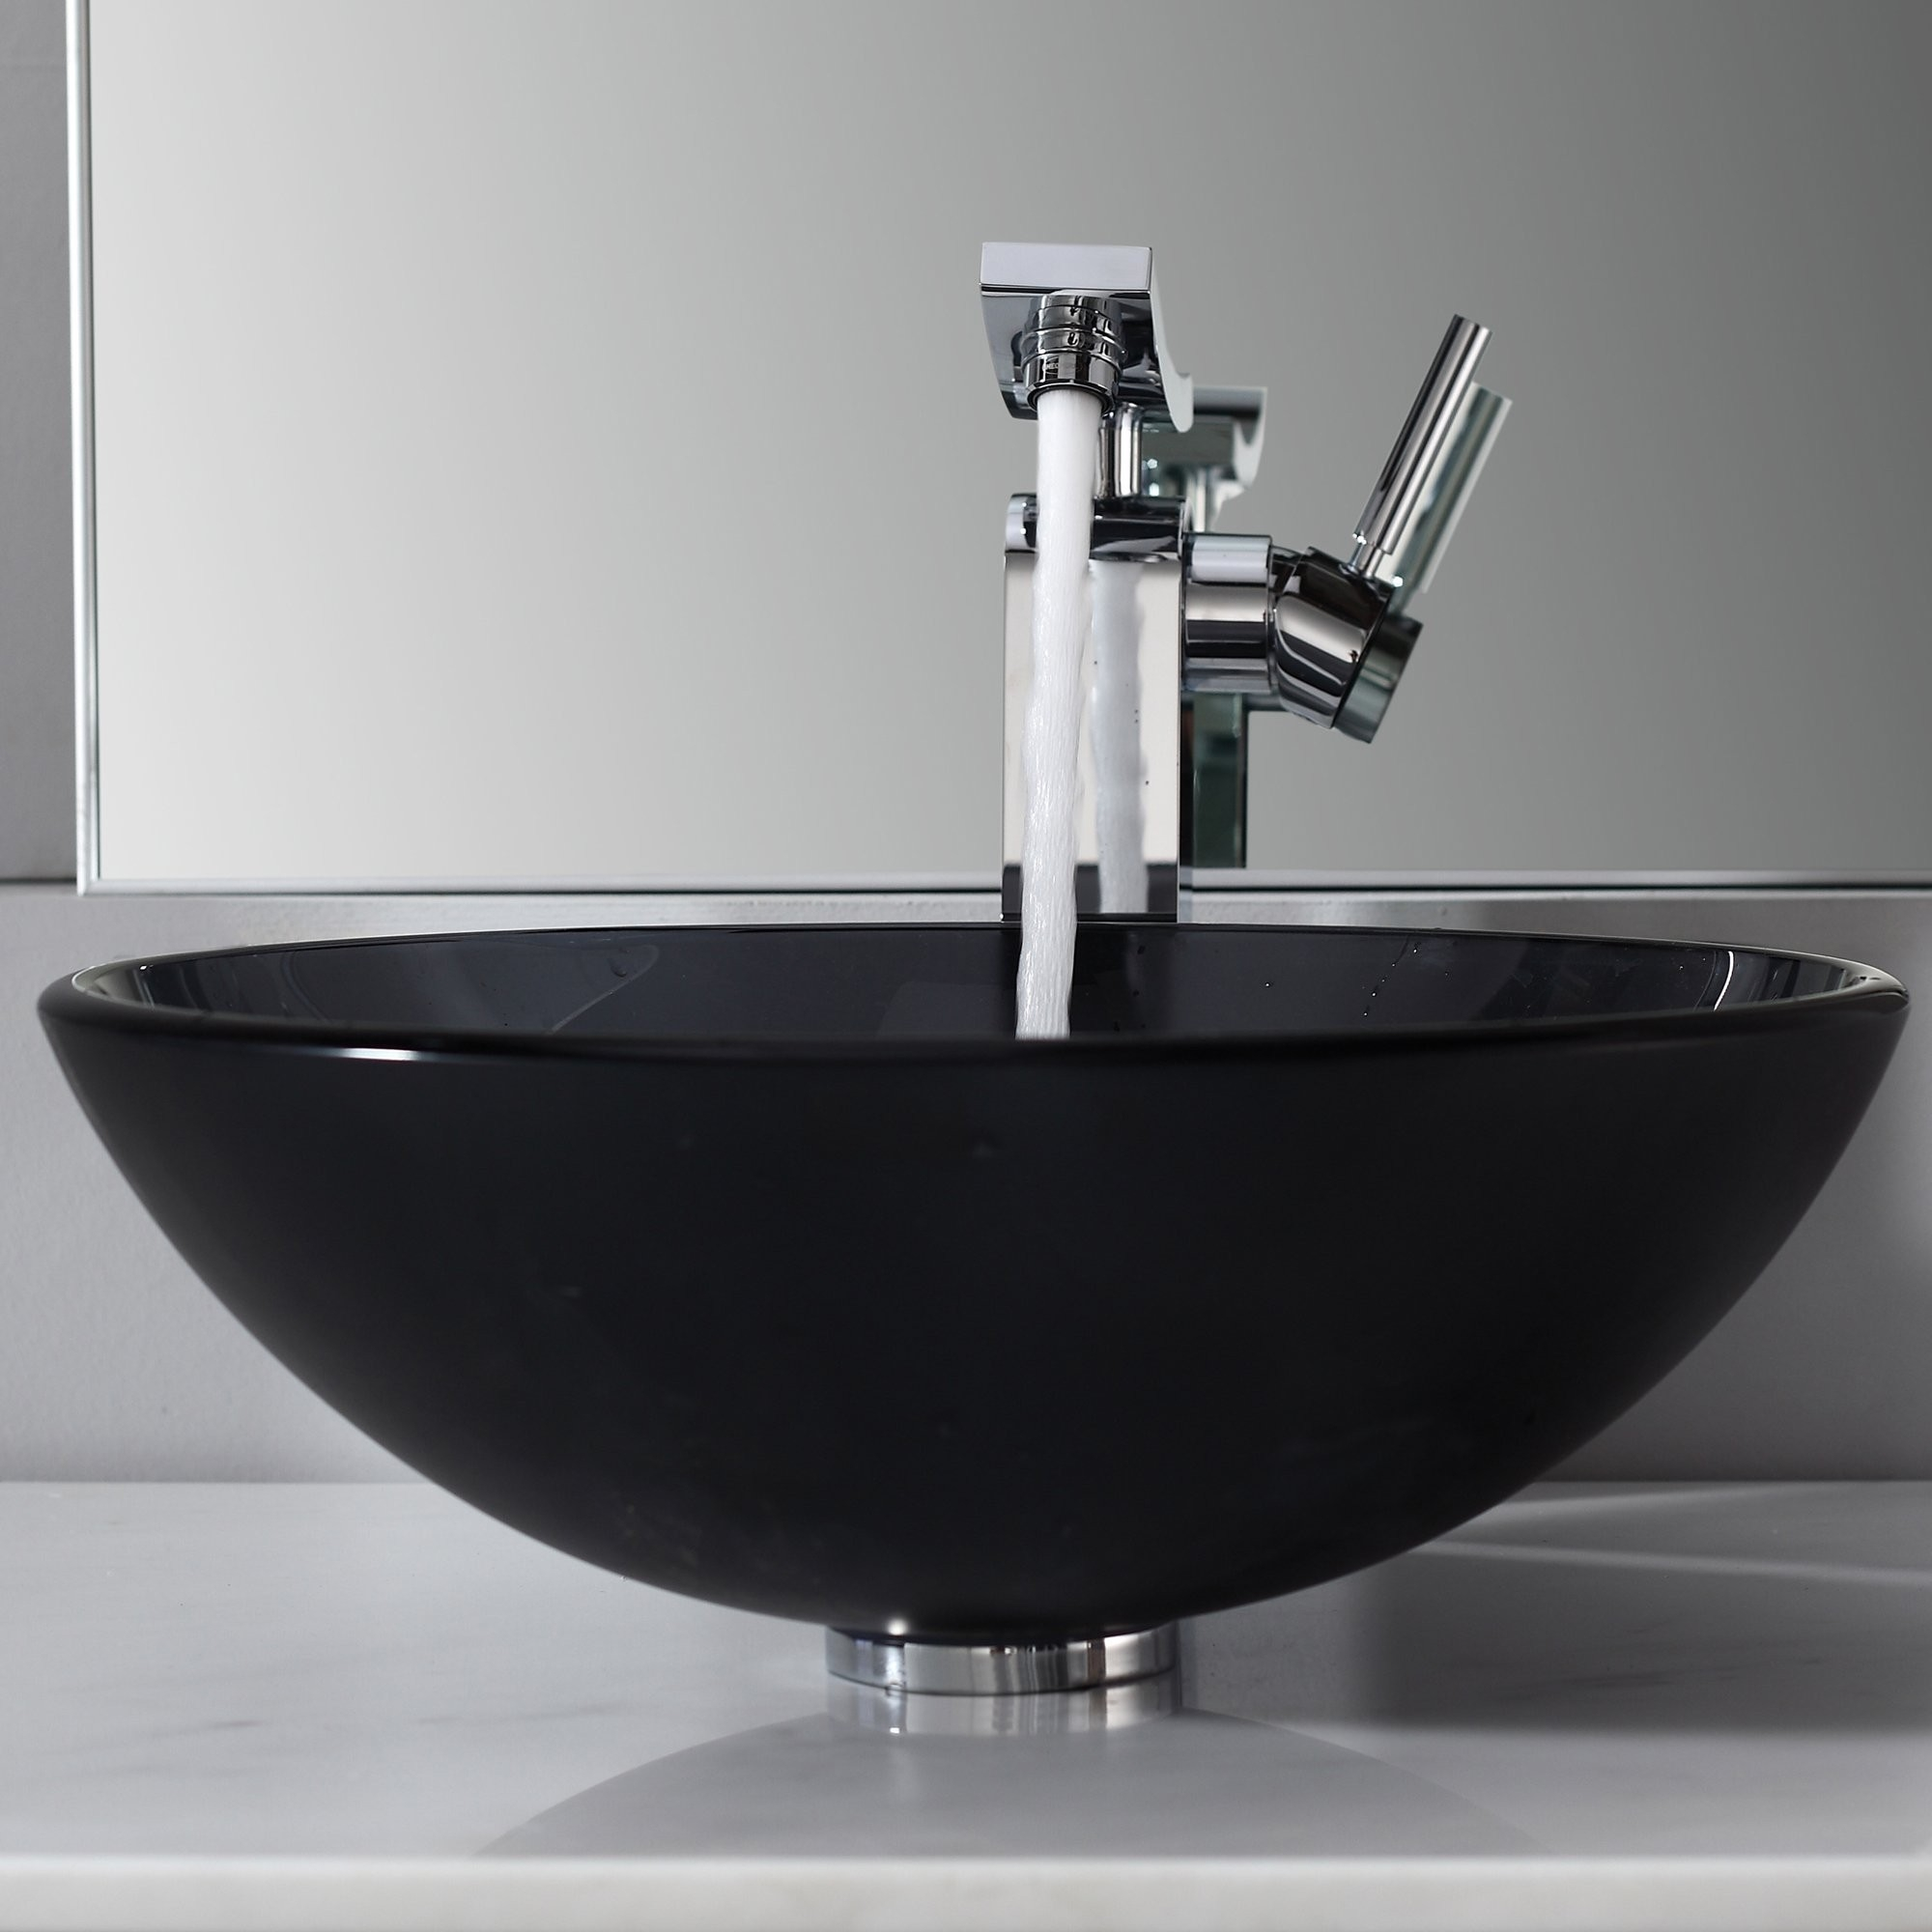 Ideas, bathroom glass vessel sink and faucet combination kraususa within proportions 2000 x 2000  .